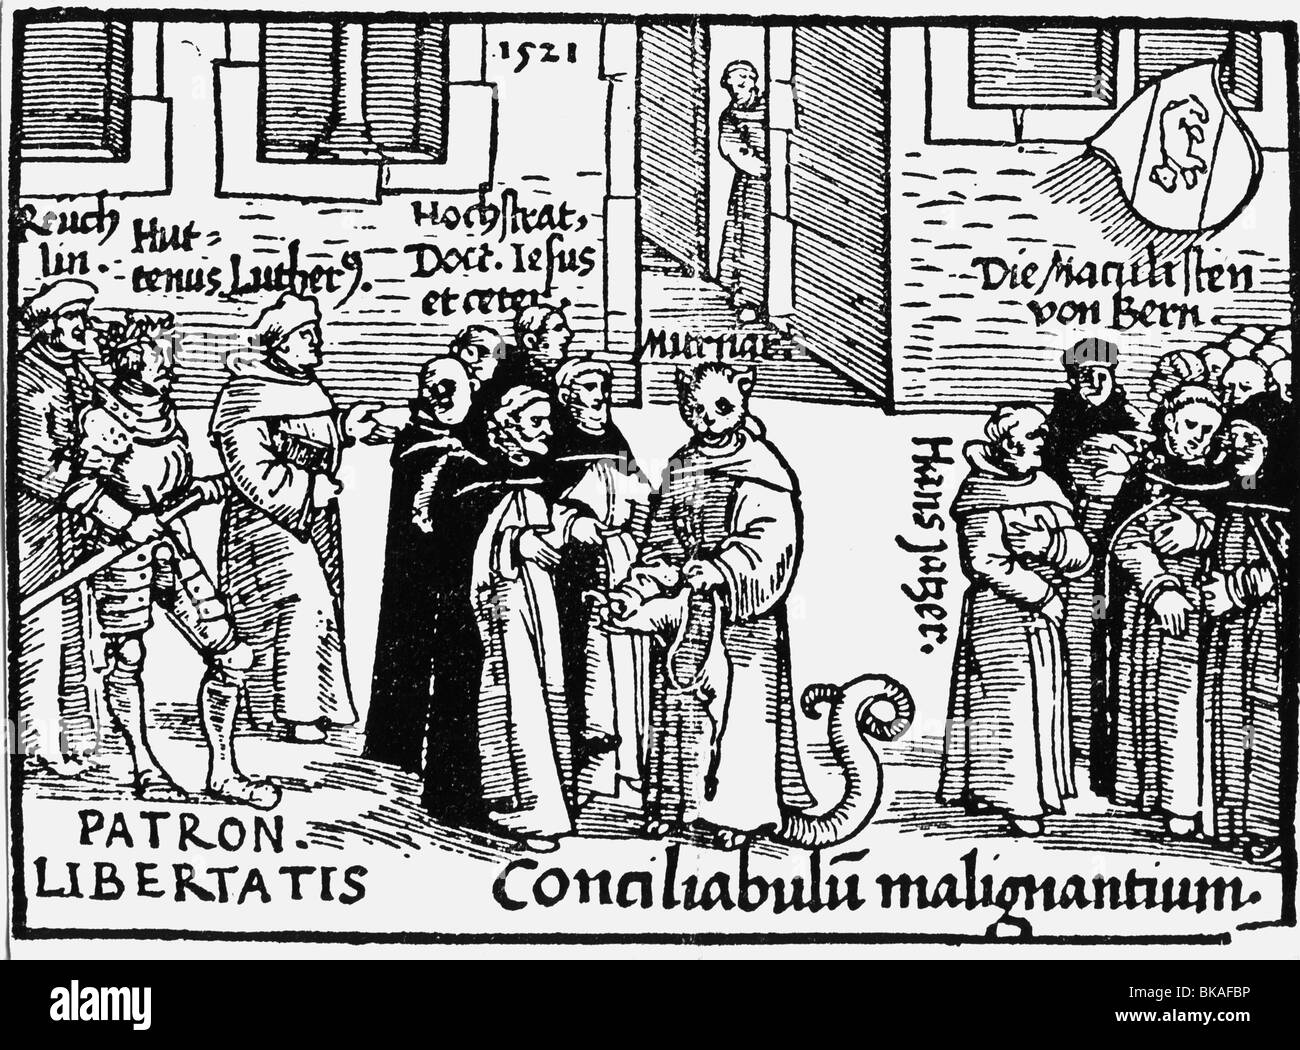 dbq protestant reformation of the sixteenth century Reformation dbq : describe and analyze the underlying causes which brought about the protestant reformation of the sixteenth century document 1.